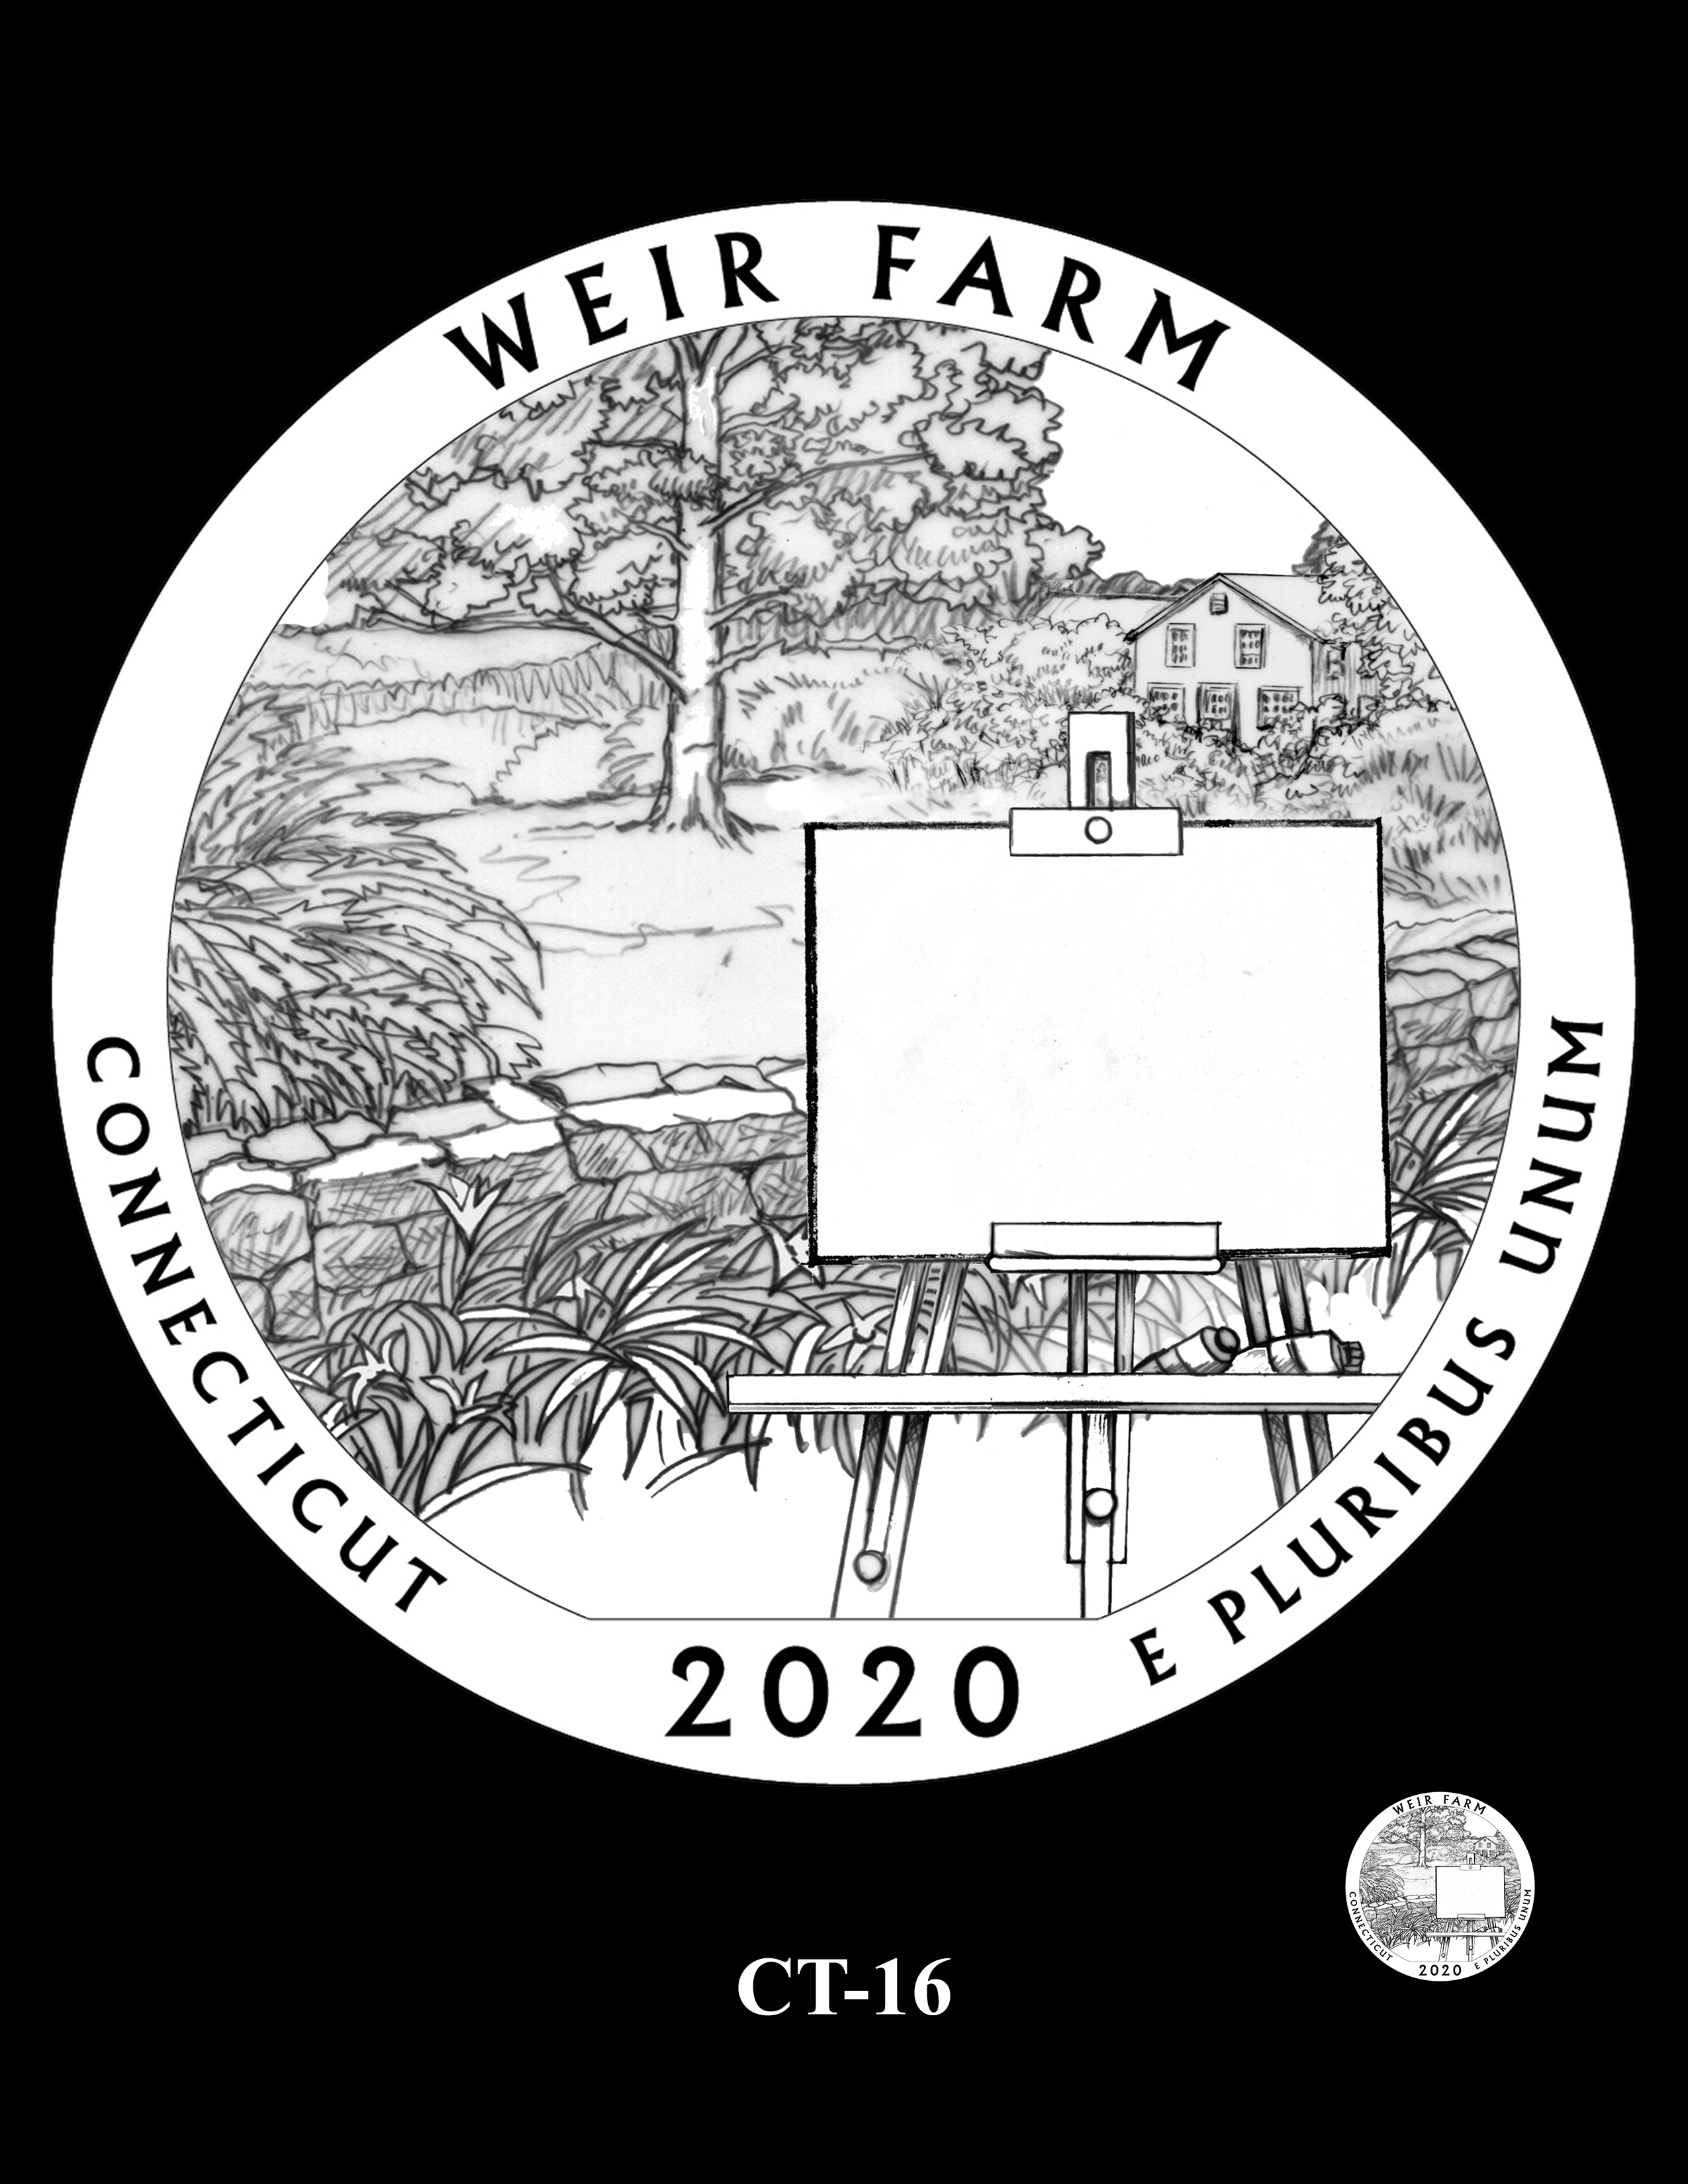 CT-16 -- 2020 America the Beautiful Quarters® Program